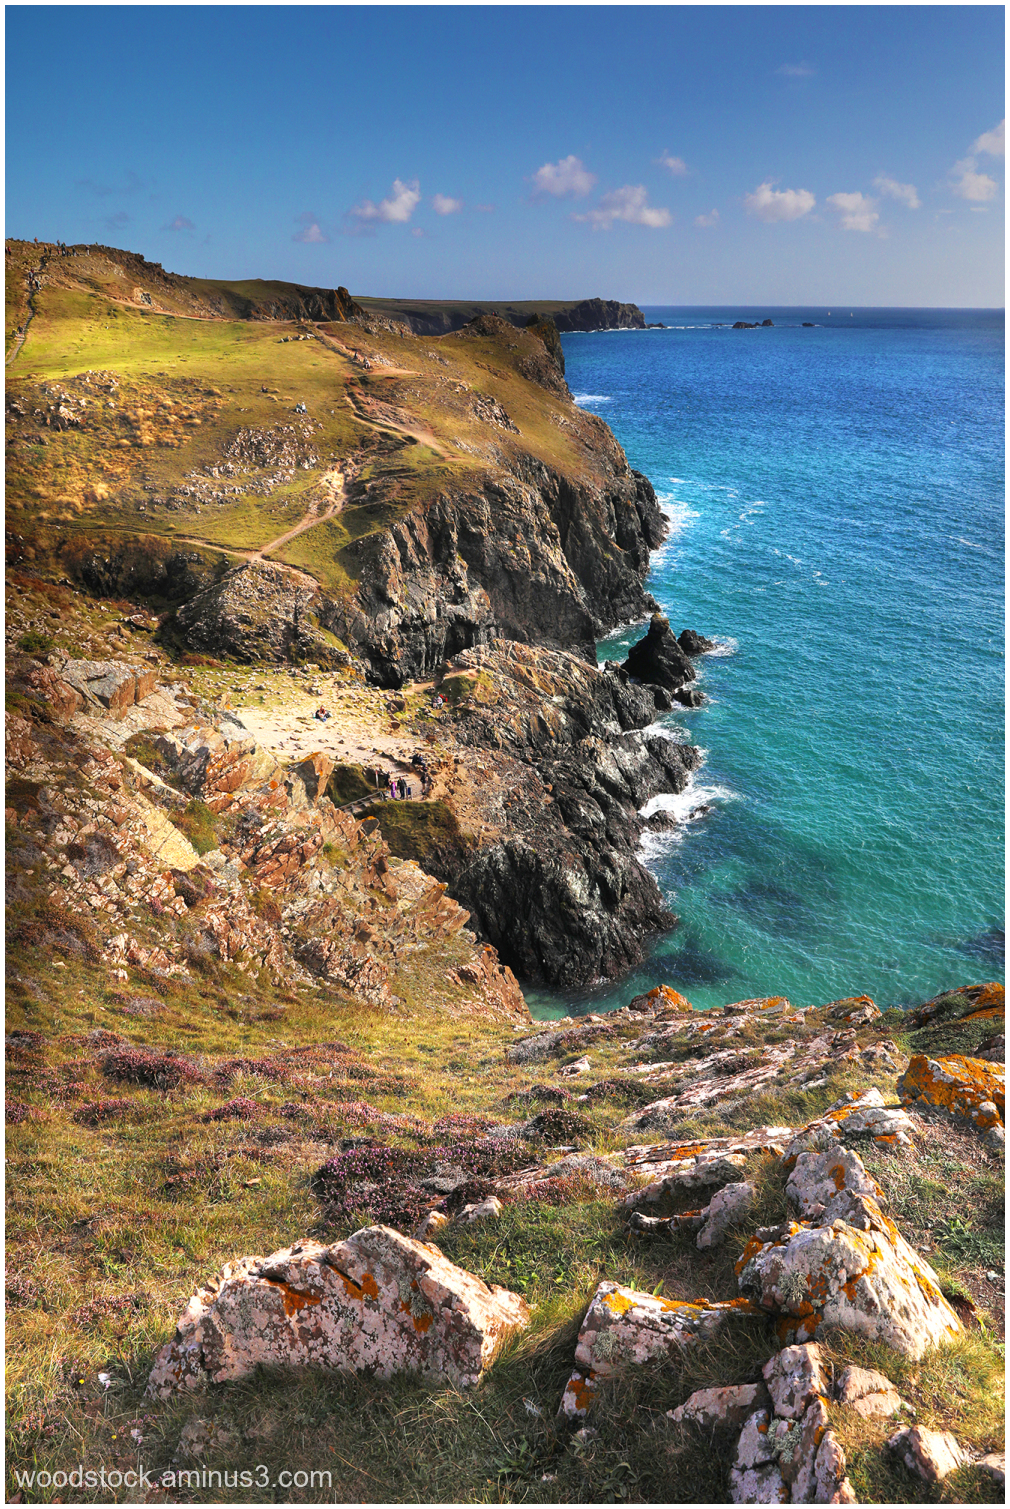 Looking South From Mullion Cove